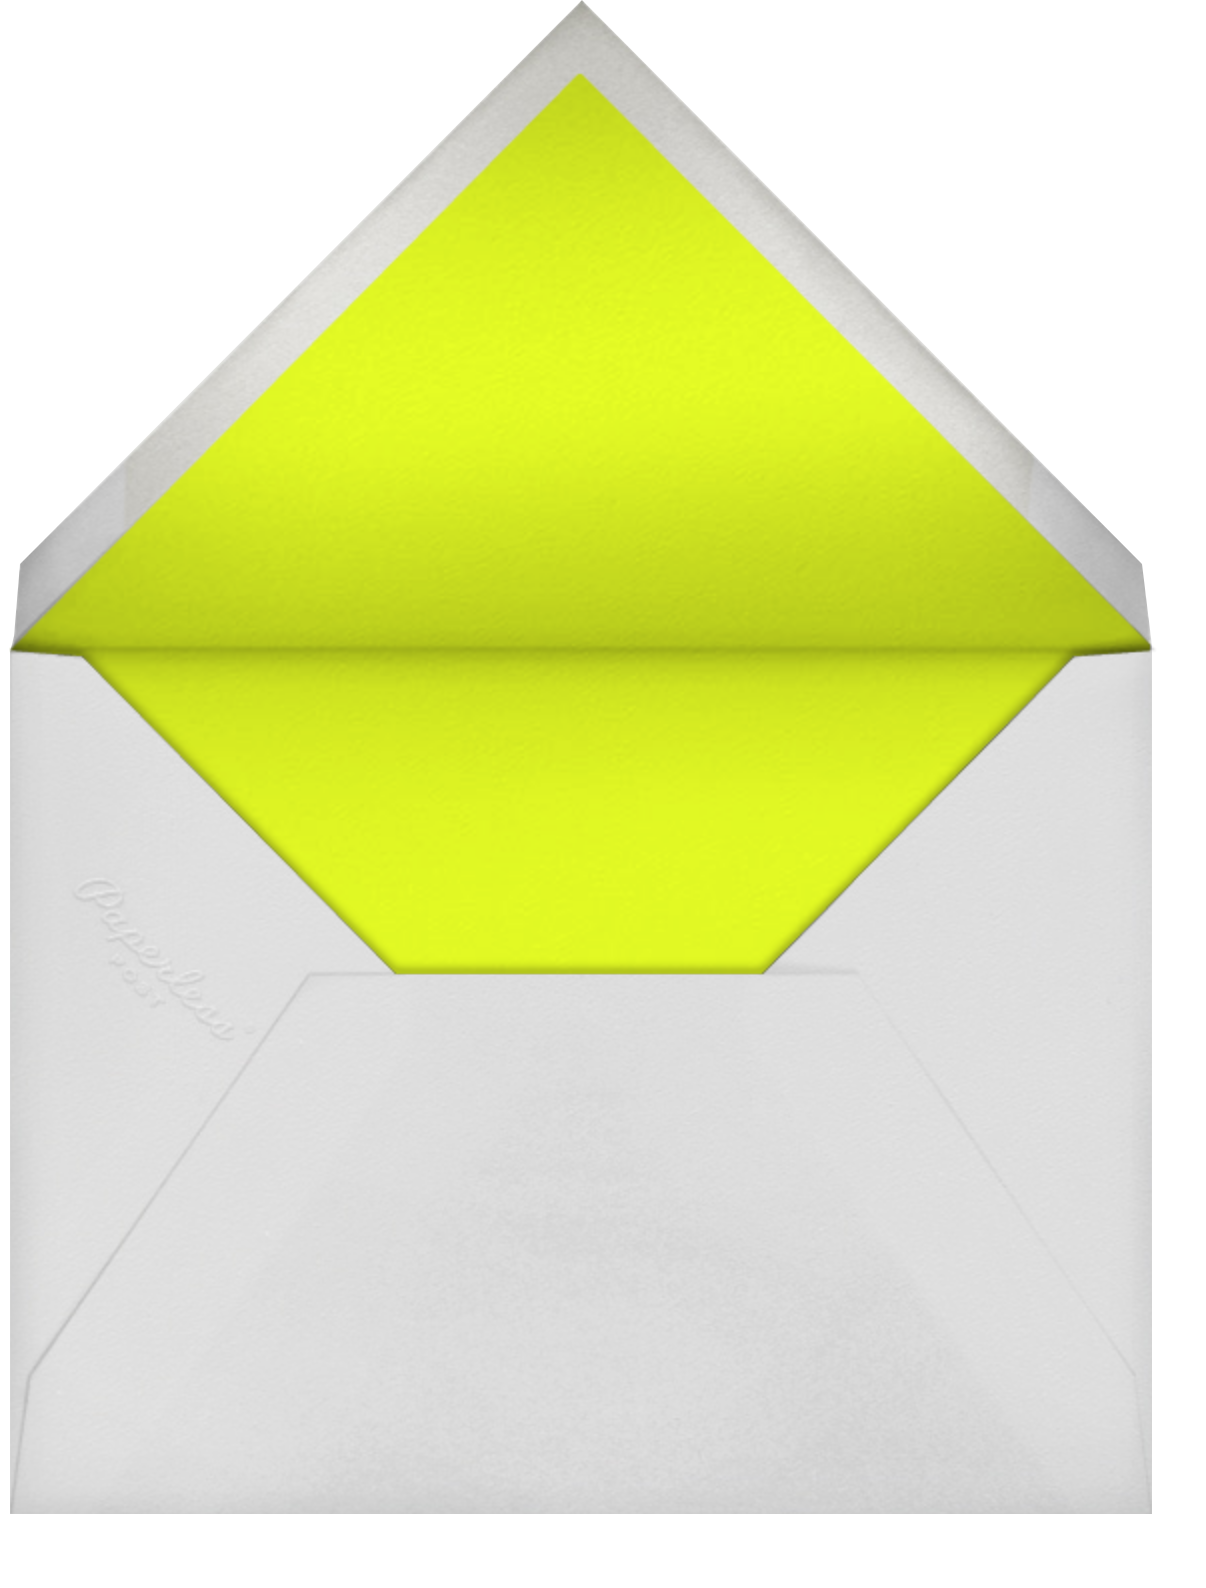 Mixed Doubles - Squash - Paperless Post - Summer entertaining - envelope back